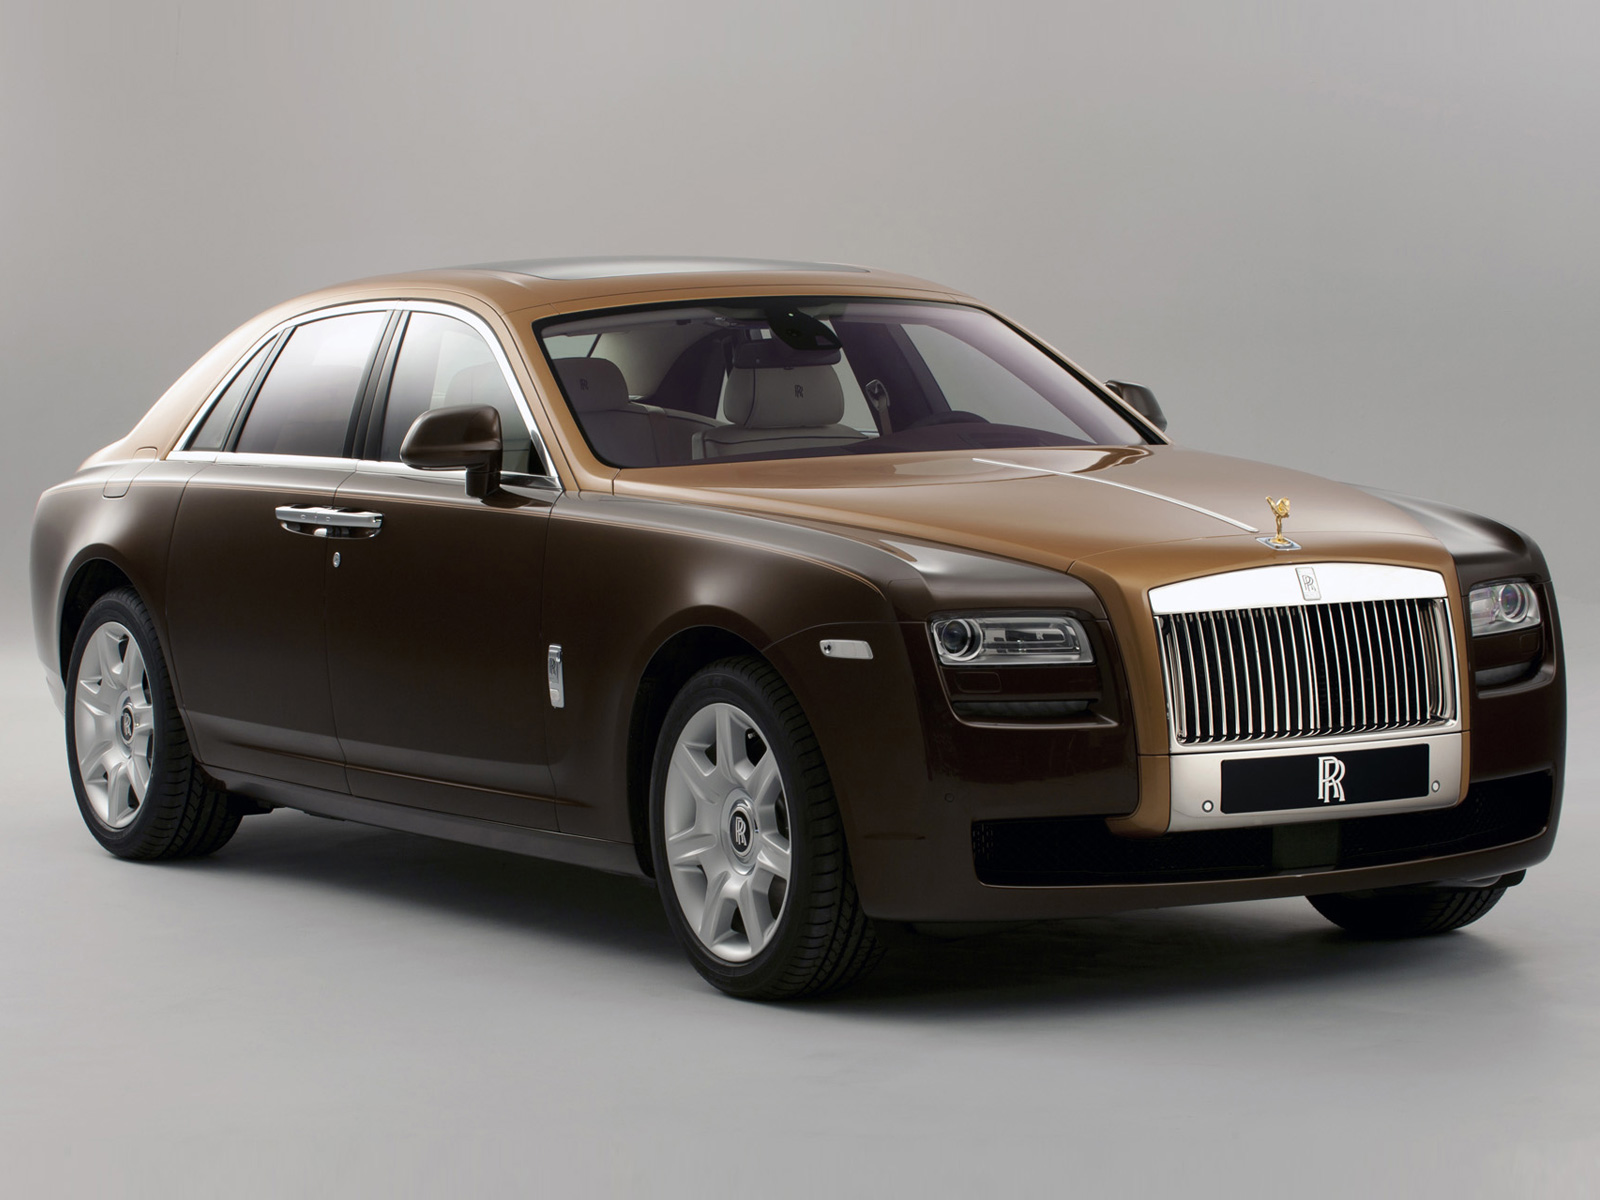 Rolls royce car photo - 1